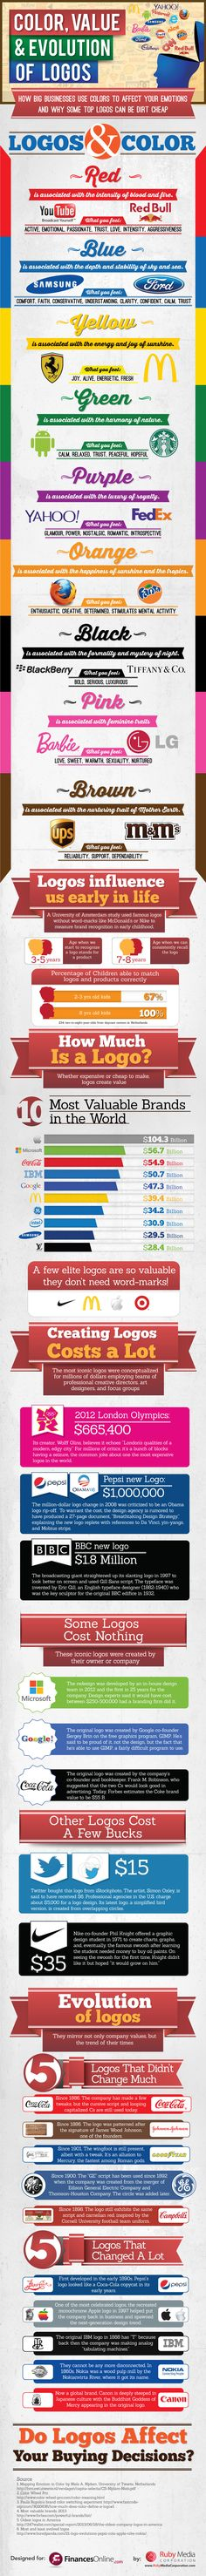 What does a logo color really mean?